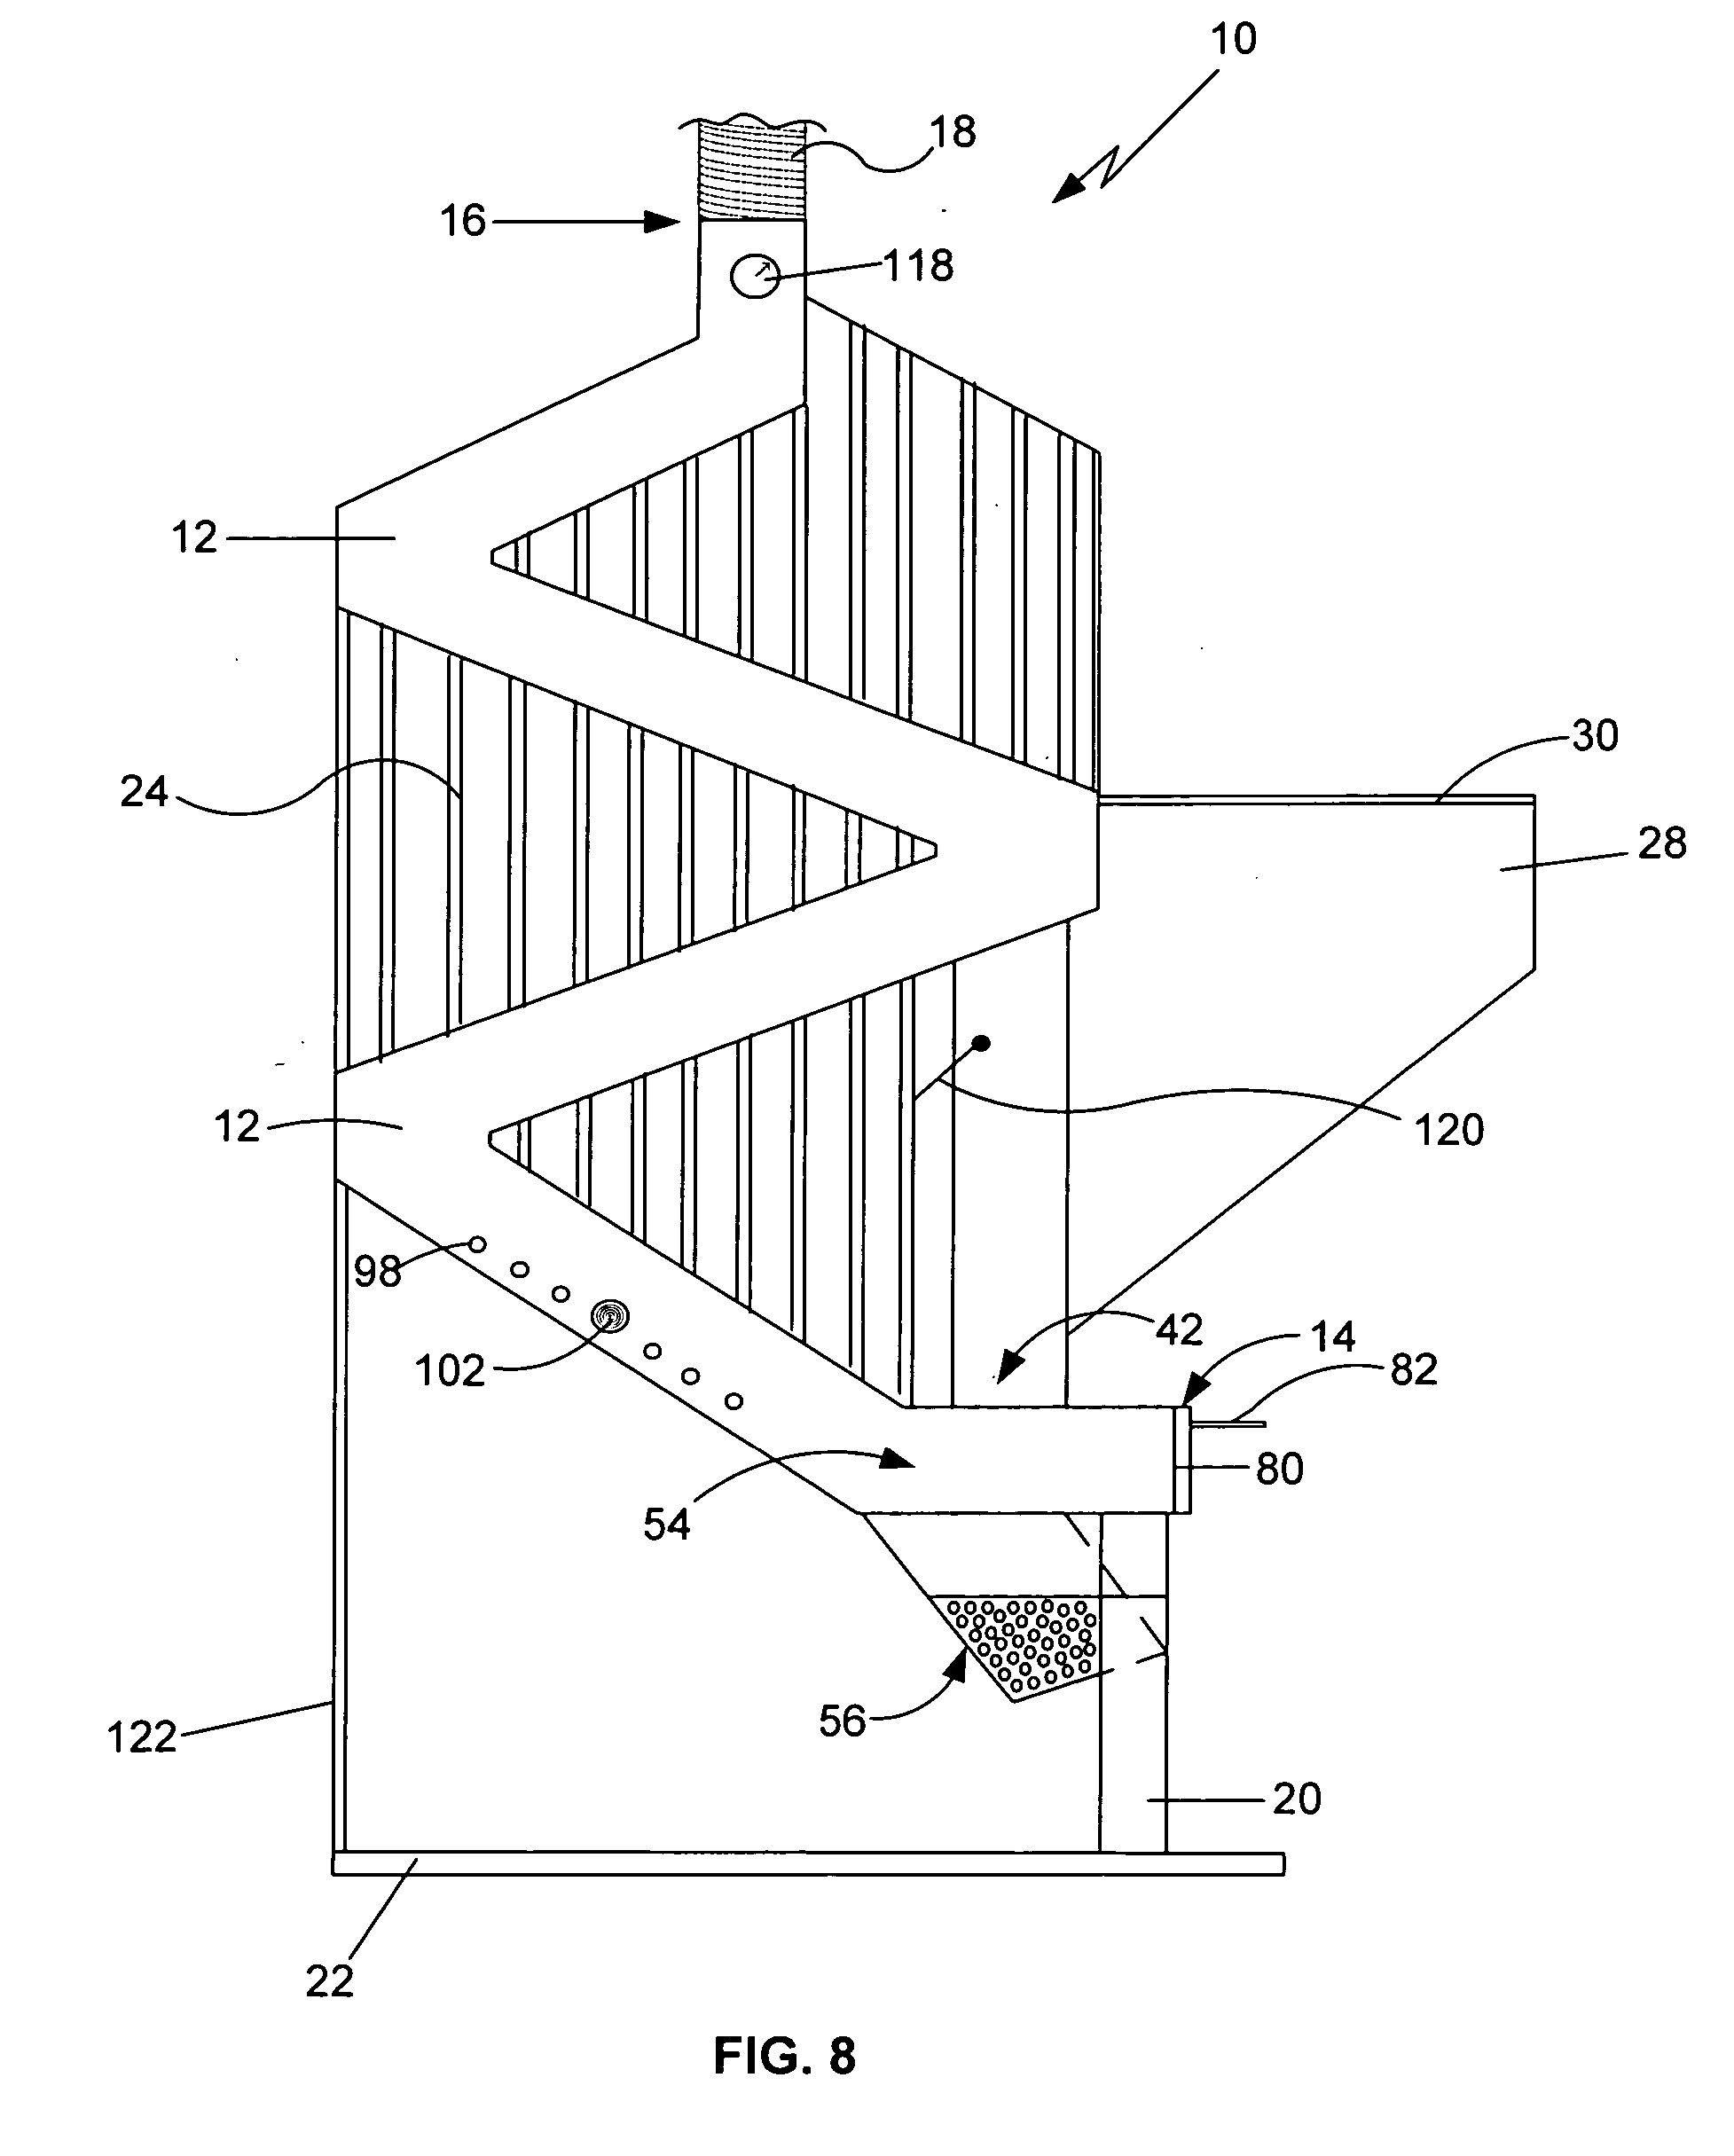 Gravity Feed Natural Draft Stove Ii Patent Us20070186920 - Gravity Feed Natural Draft Pellet